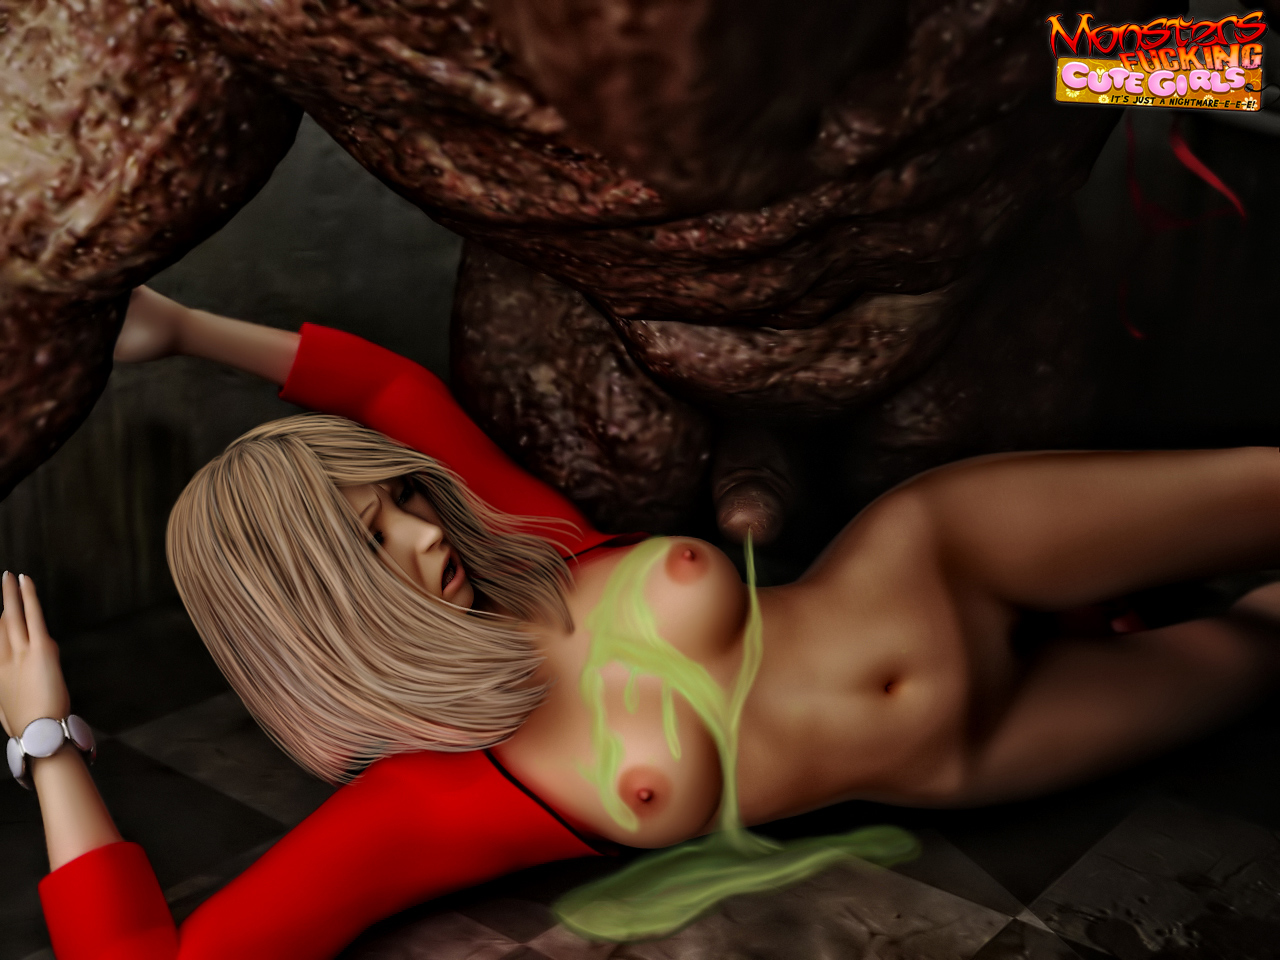 3d hentai monster fuck girl 3gp videos nude scene